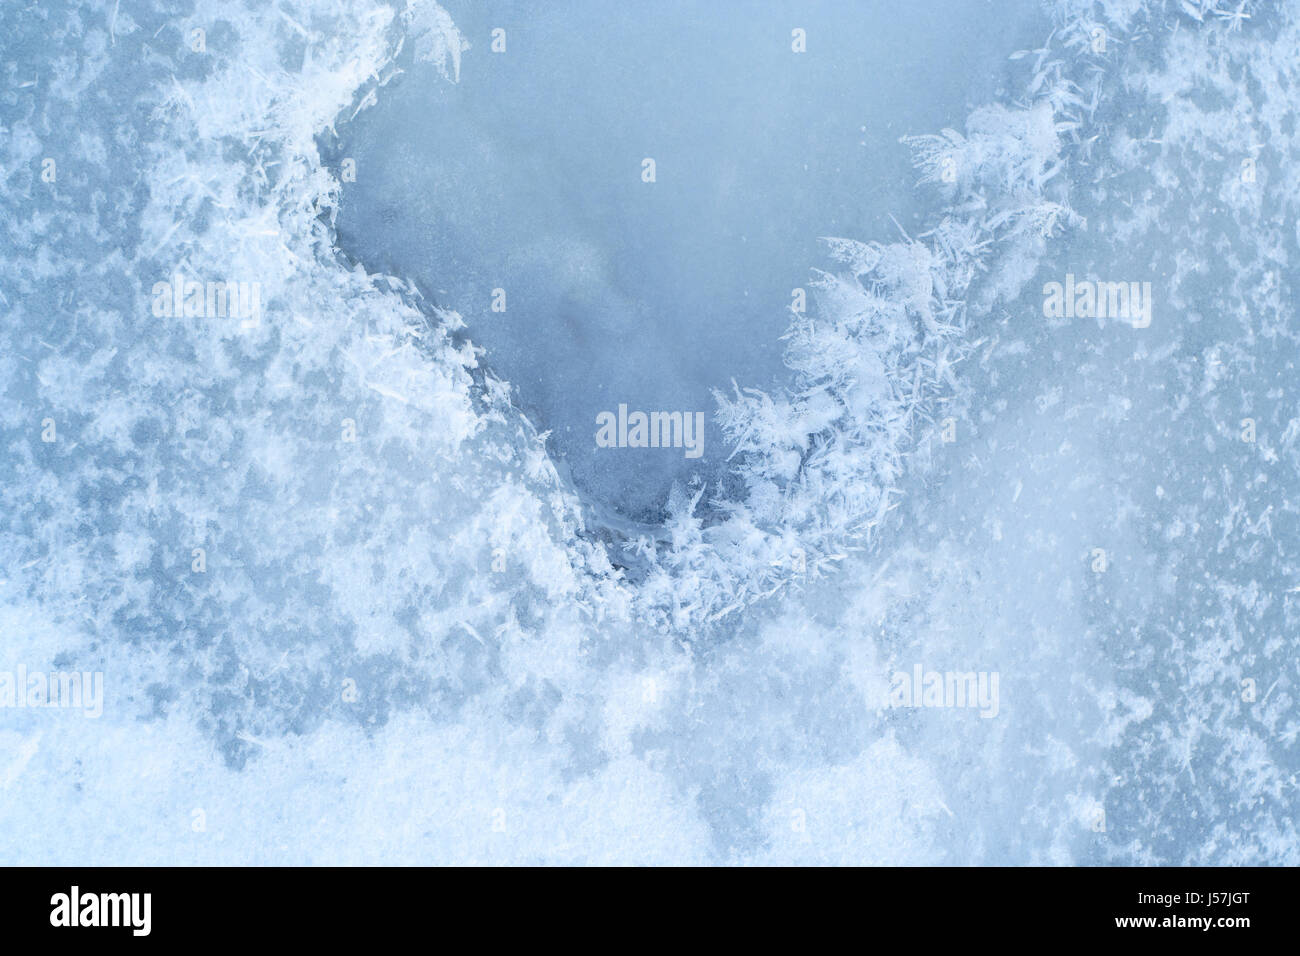 Close-up ice-bound water surface with crystals pattern at the winter time. Stock Photo